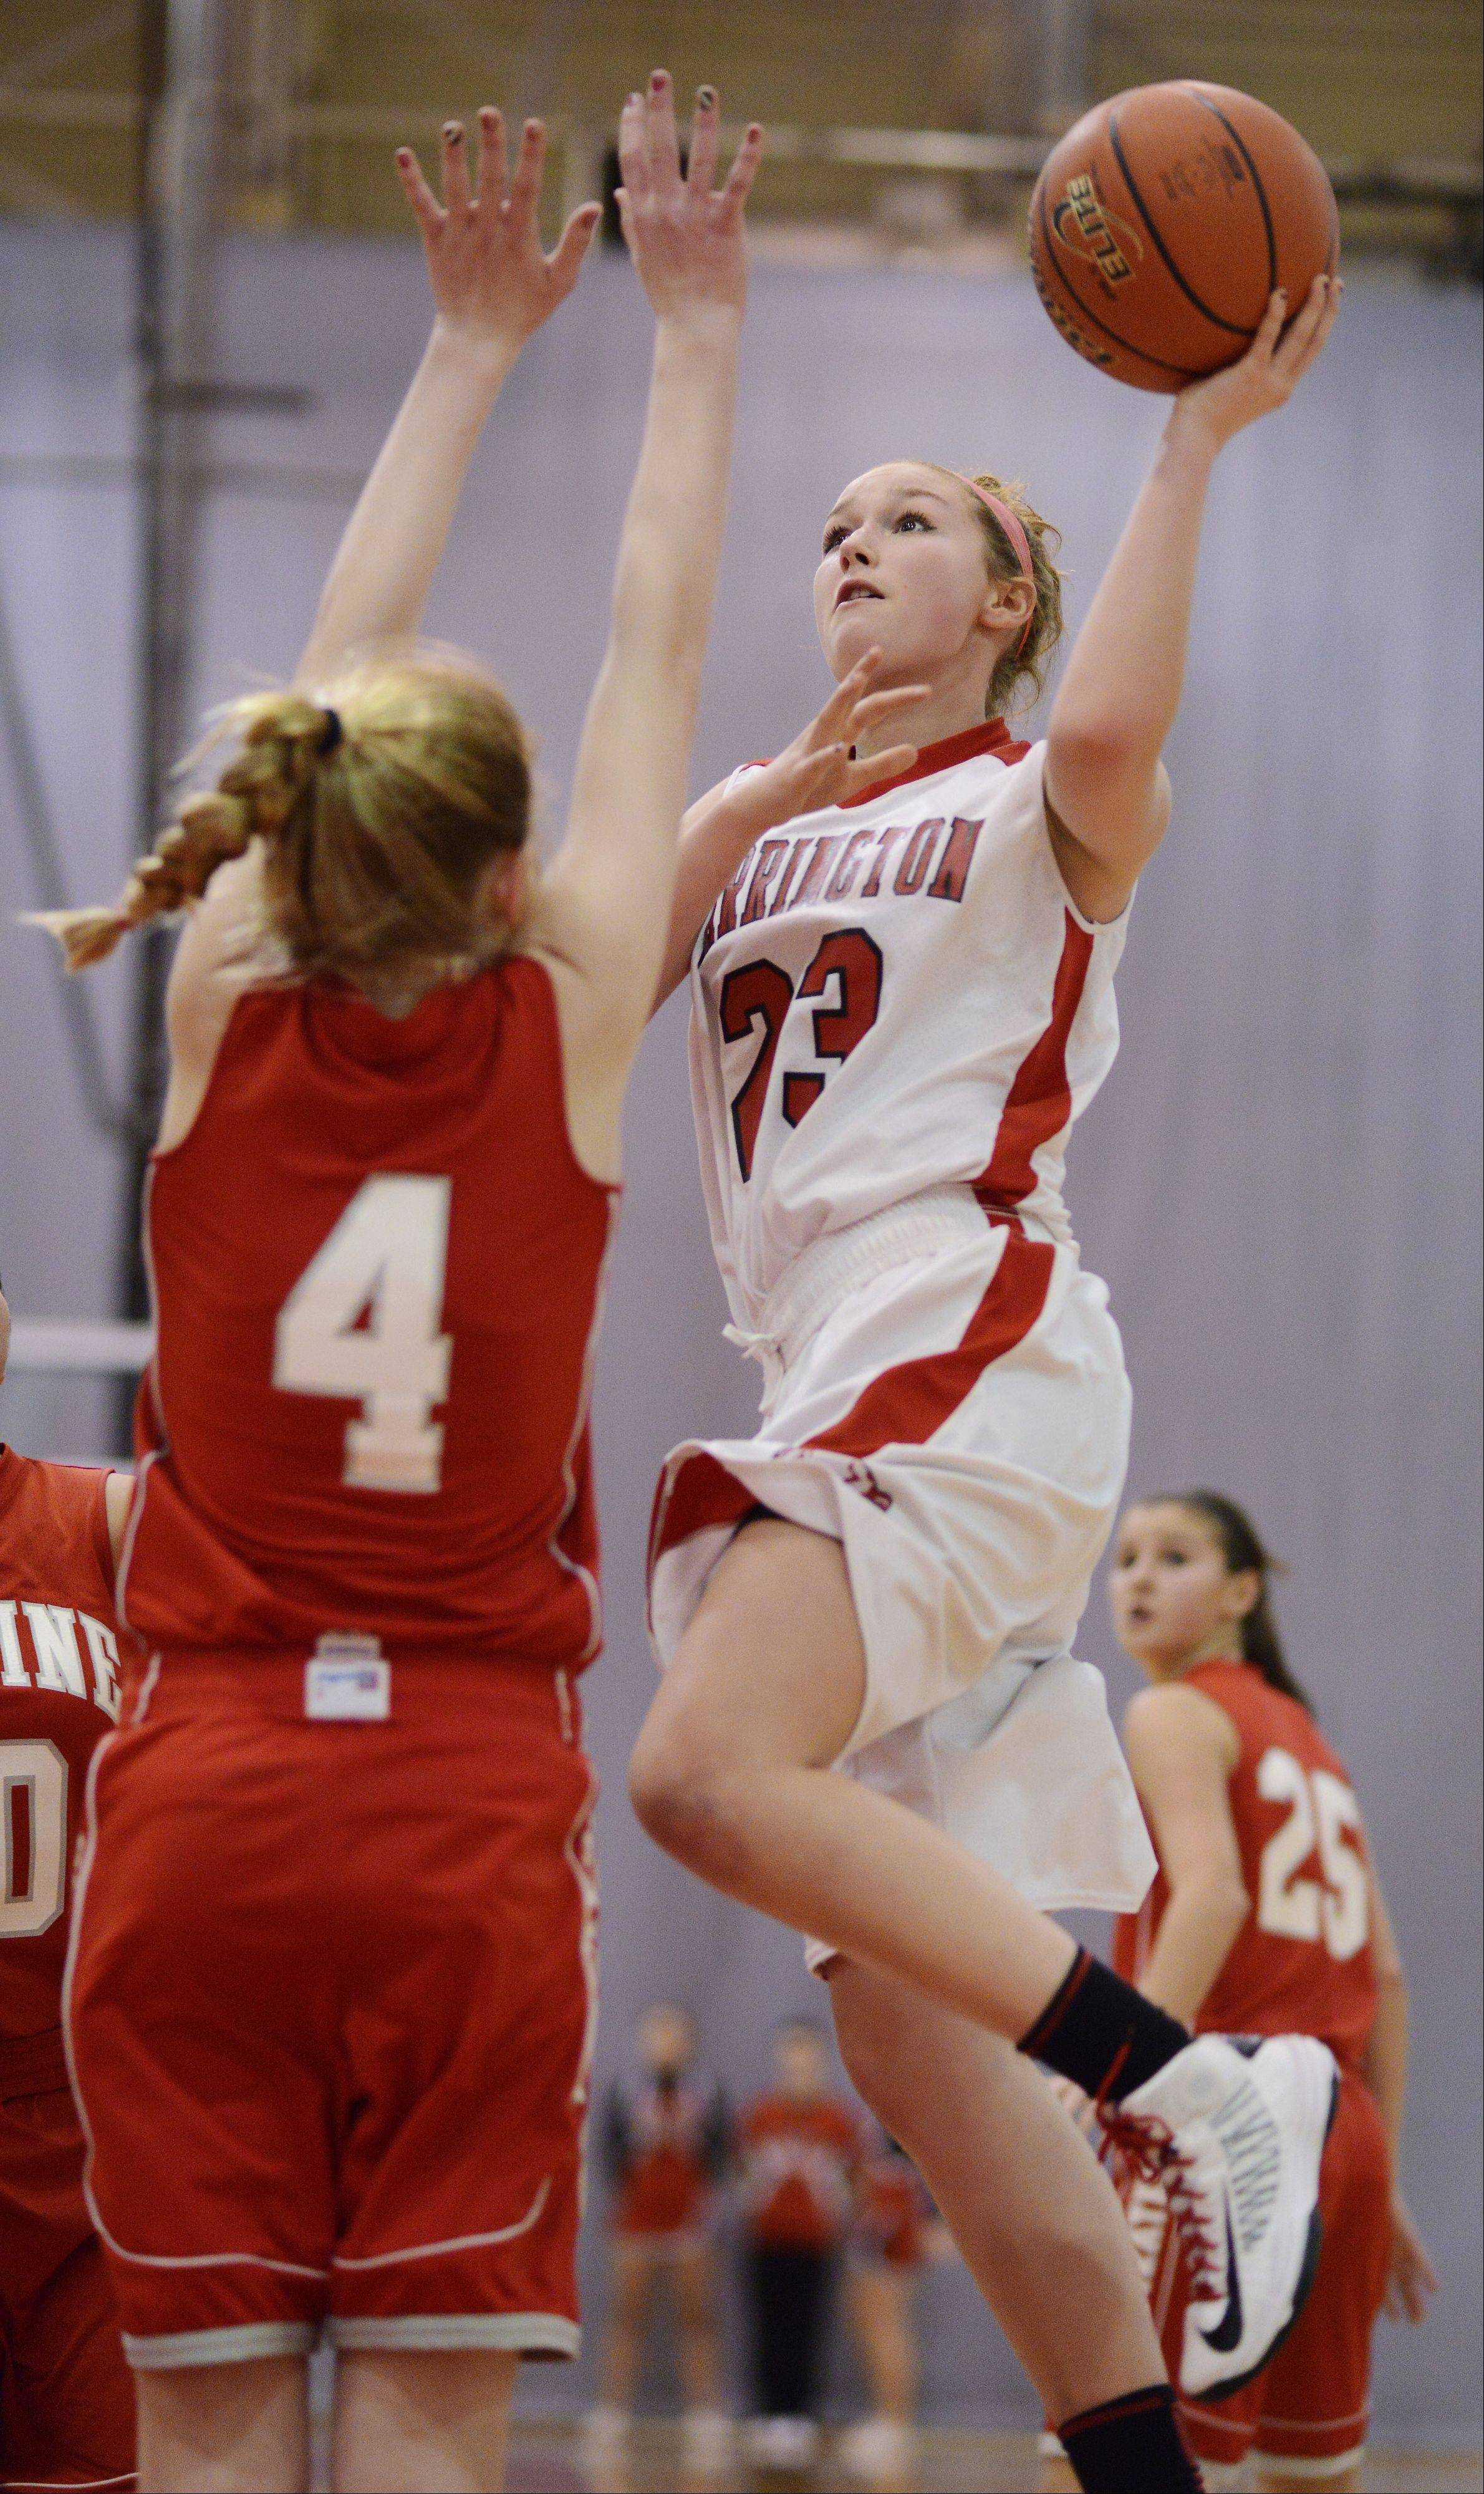 Barrington's Brooke Gunderson takes a shot as Palatine's Morgan Radtke defends during Tuesday's game at Barrington.